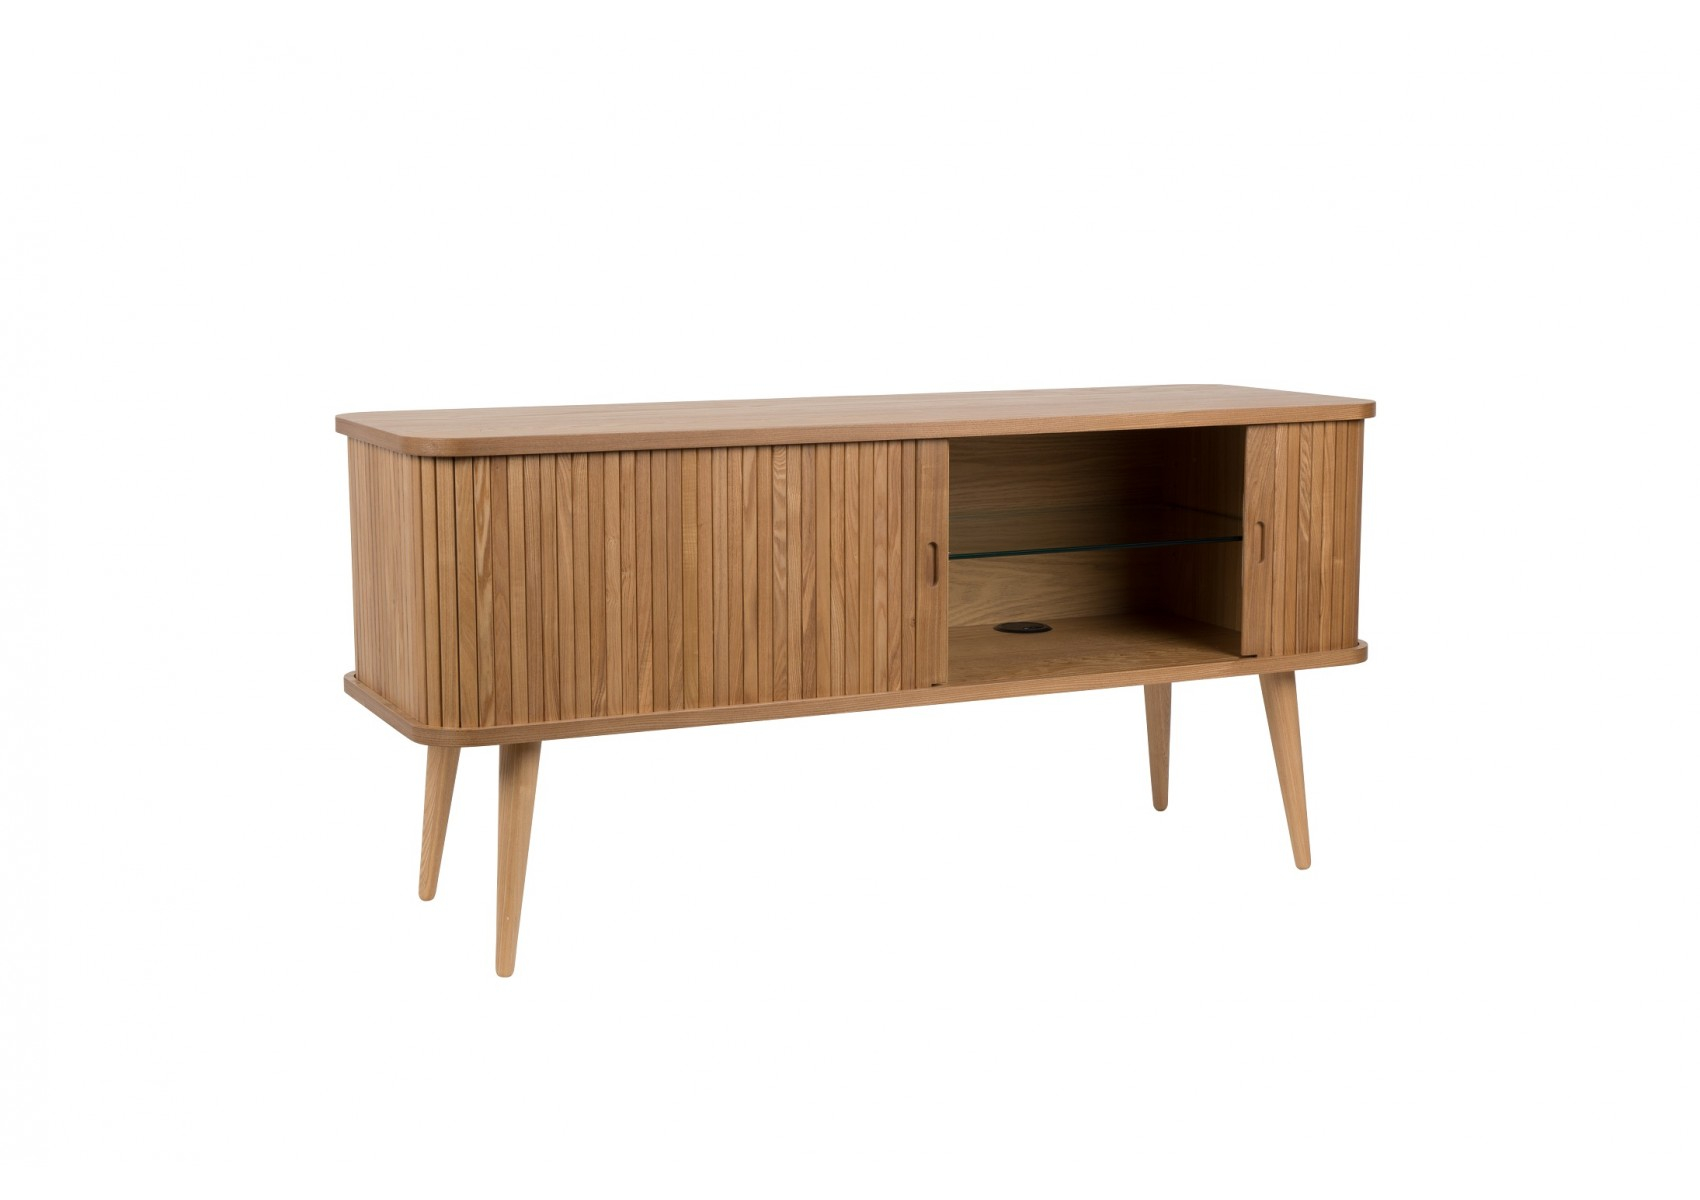 Buffet En Bois Au Design Scandinave Sideboard Barbier Par Zuiver # Buffet Et Meuble Tv